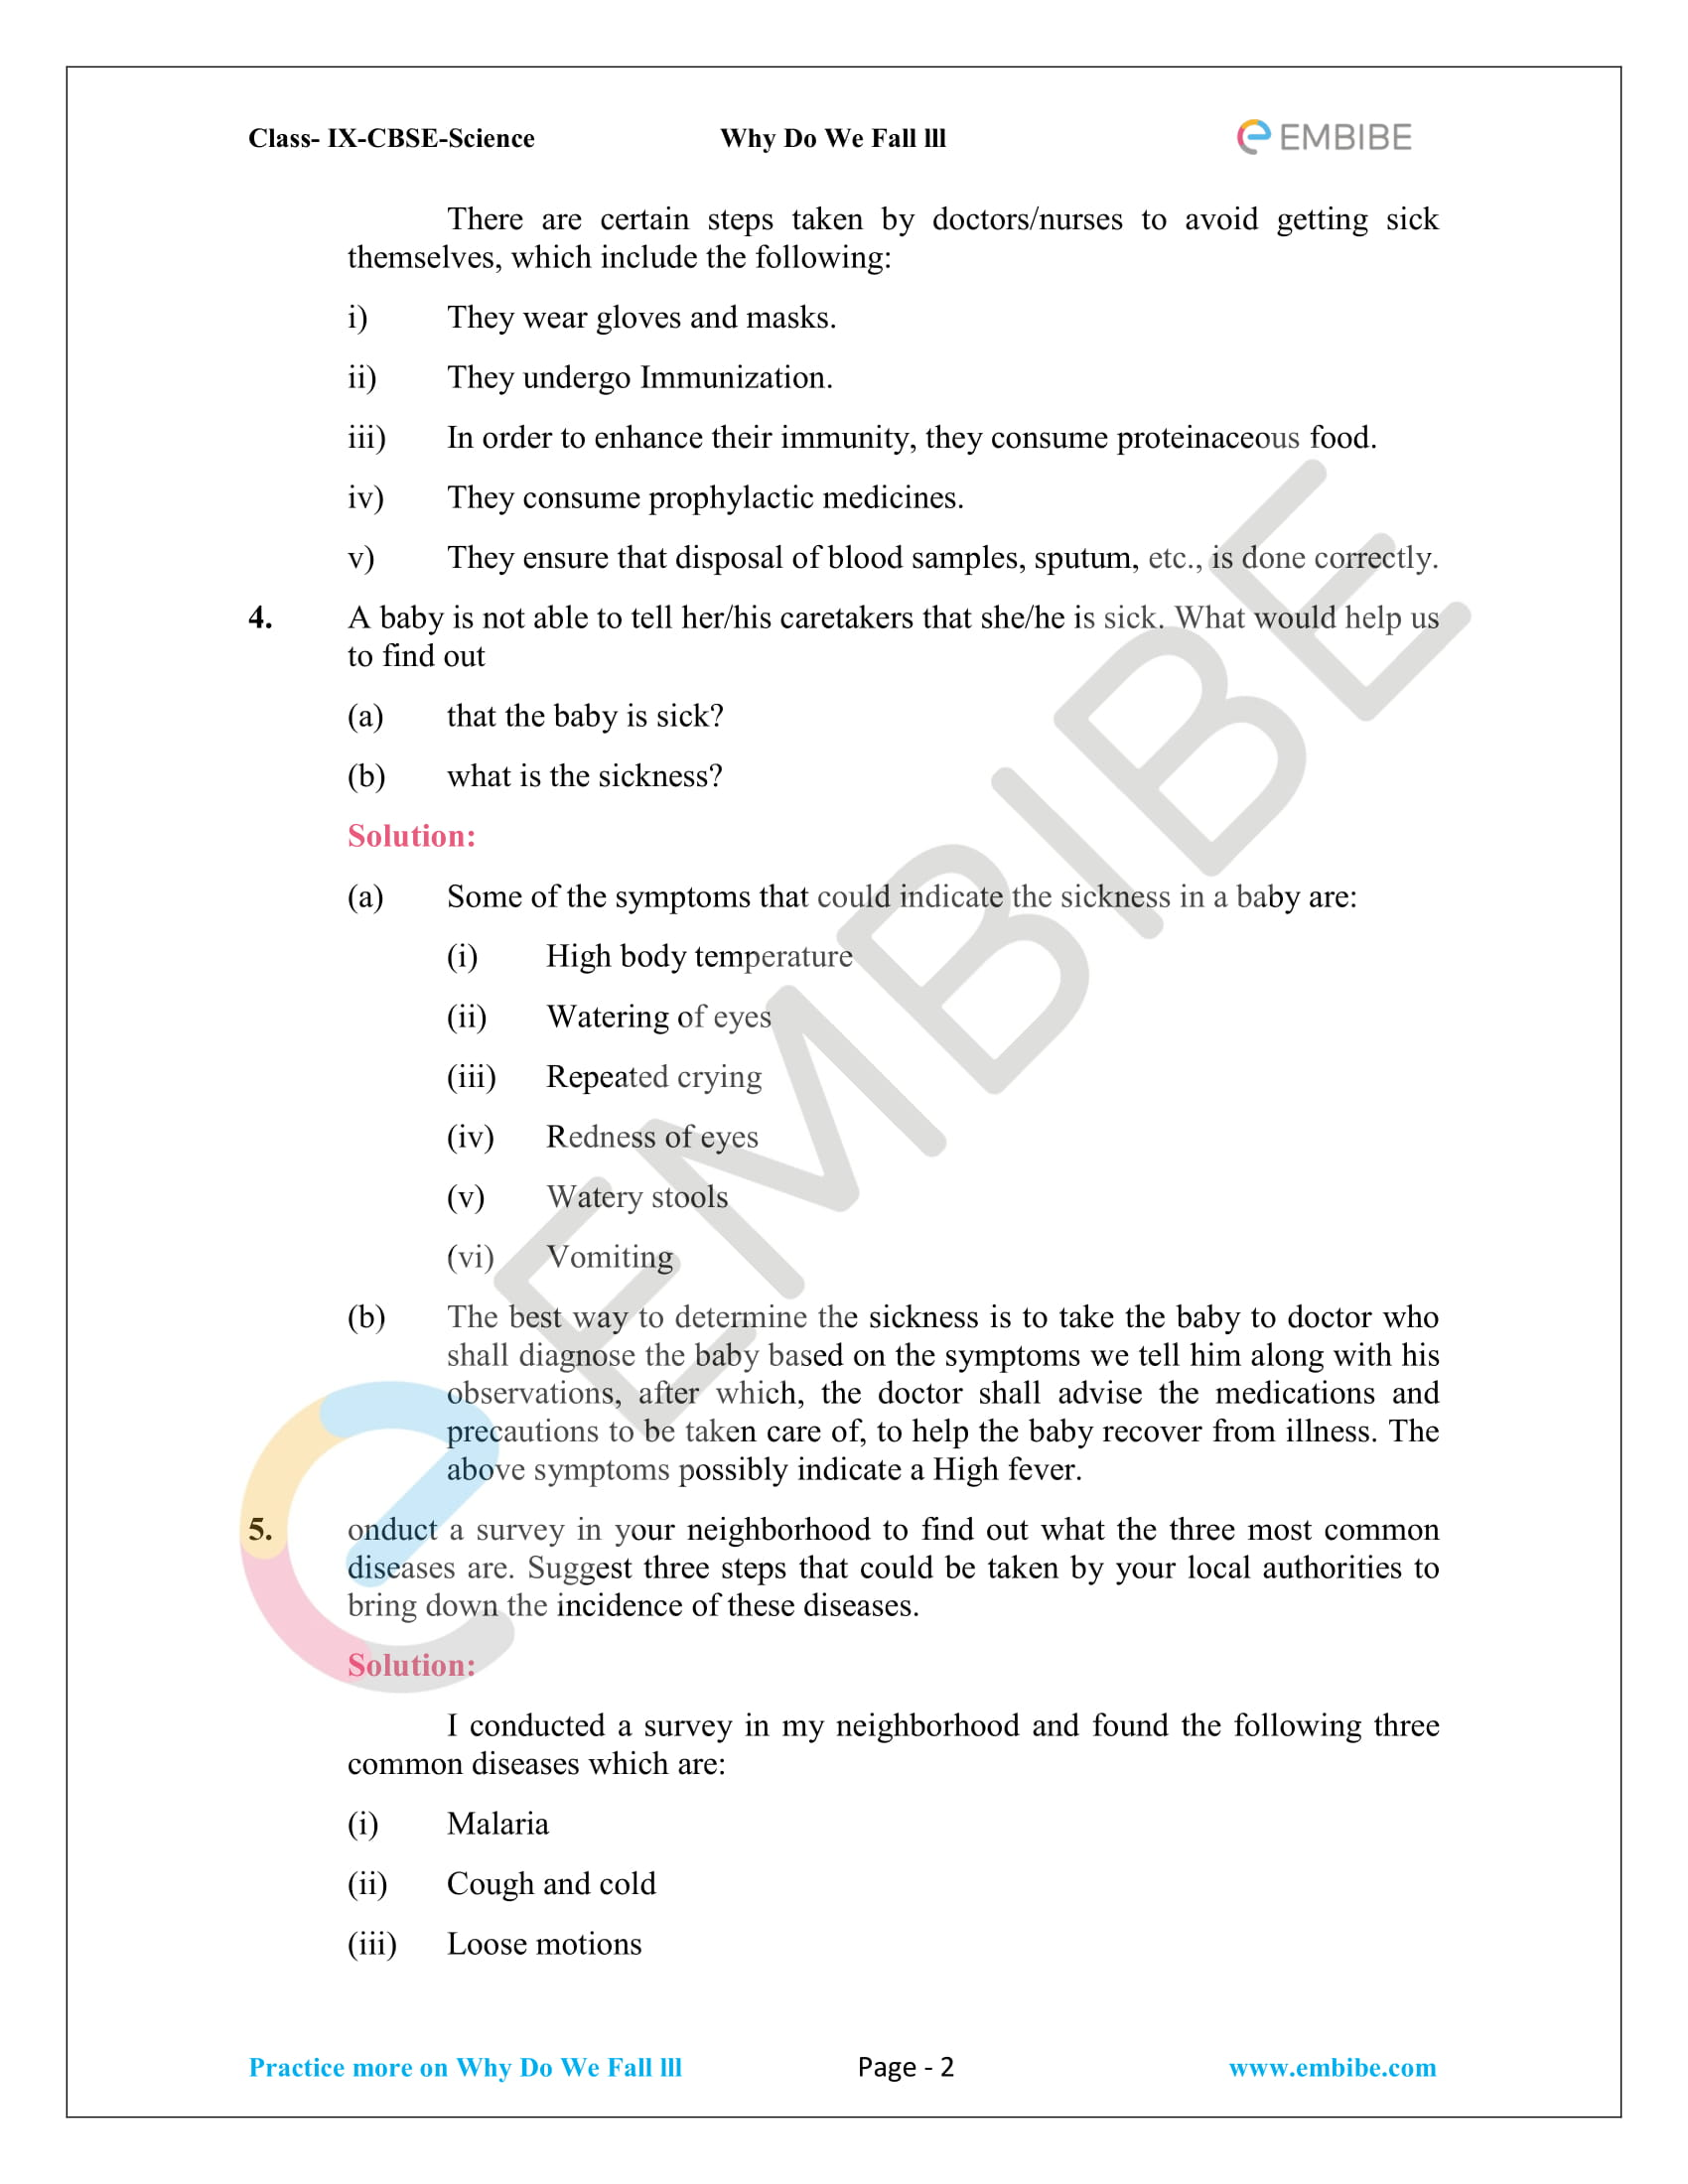 CBSE NCERT Solutions for Class 9 Science Chapter 13-2